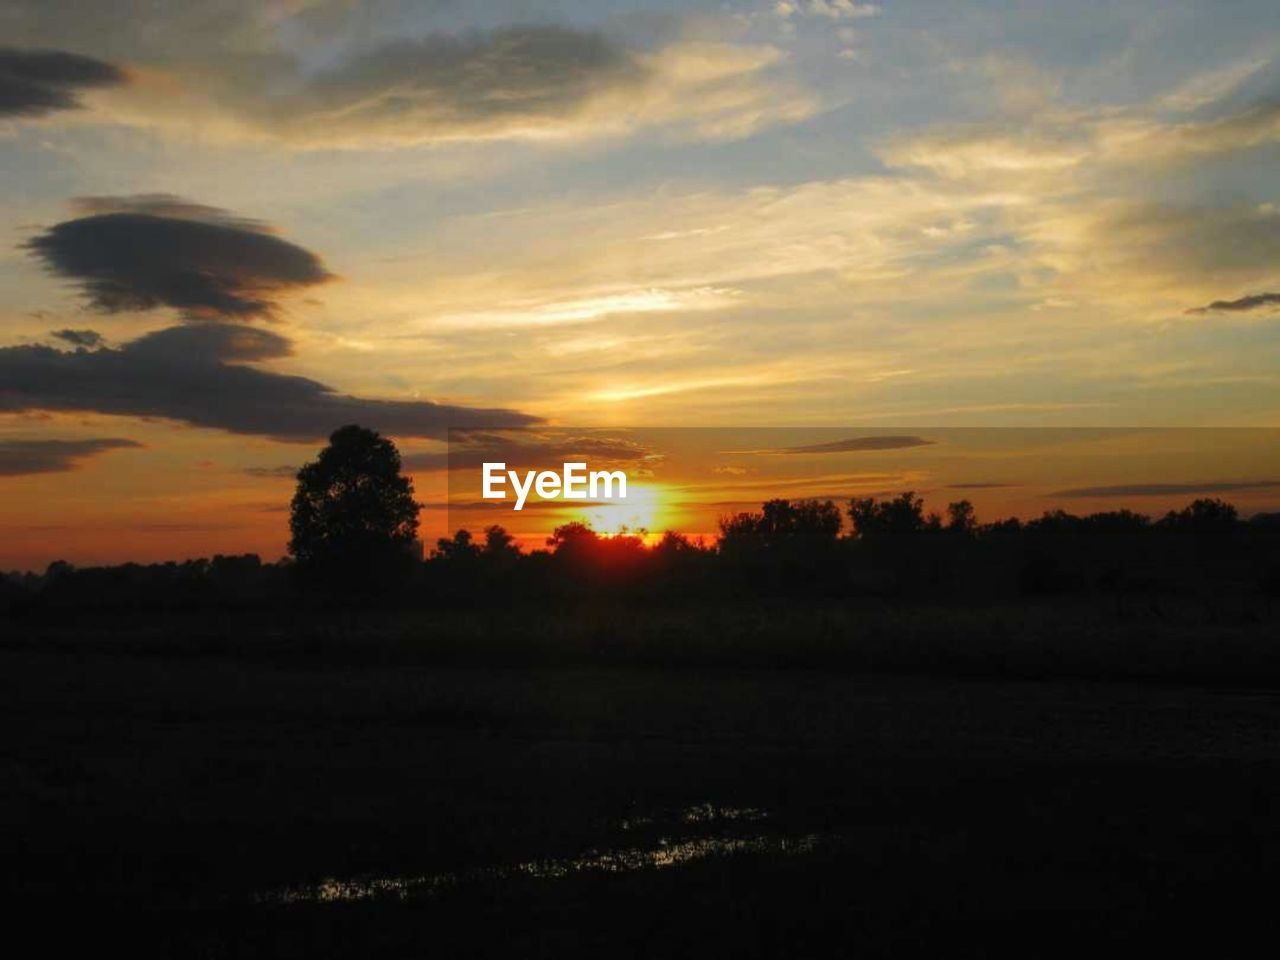 sky, sunset, tranquil scene, scenics - nature, tranquility, cloud - sky, beauty in nature, environment, landscape, tree, land, nature, field, no people, silhouette, plant, idyllic, orange color, non-urban scene, sun, outdoors